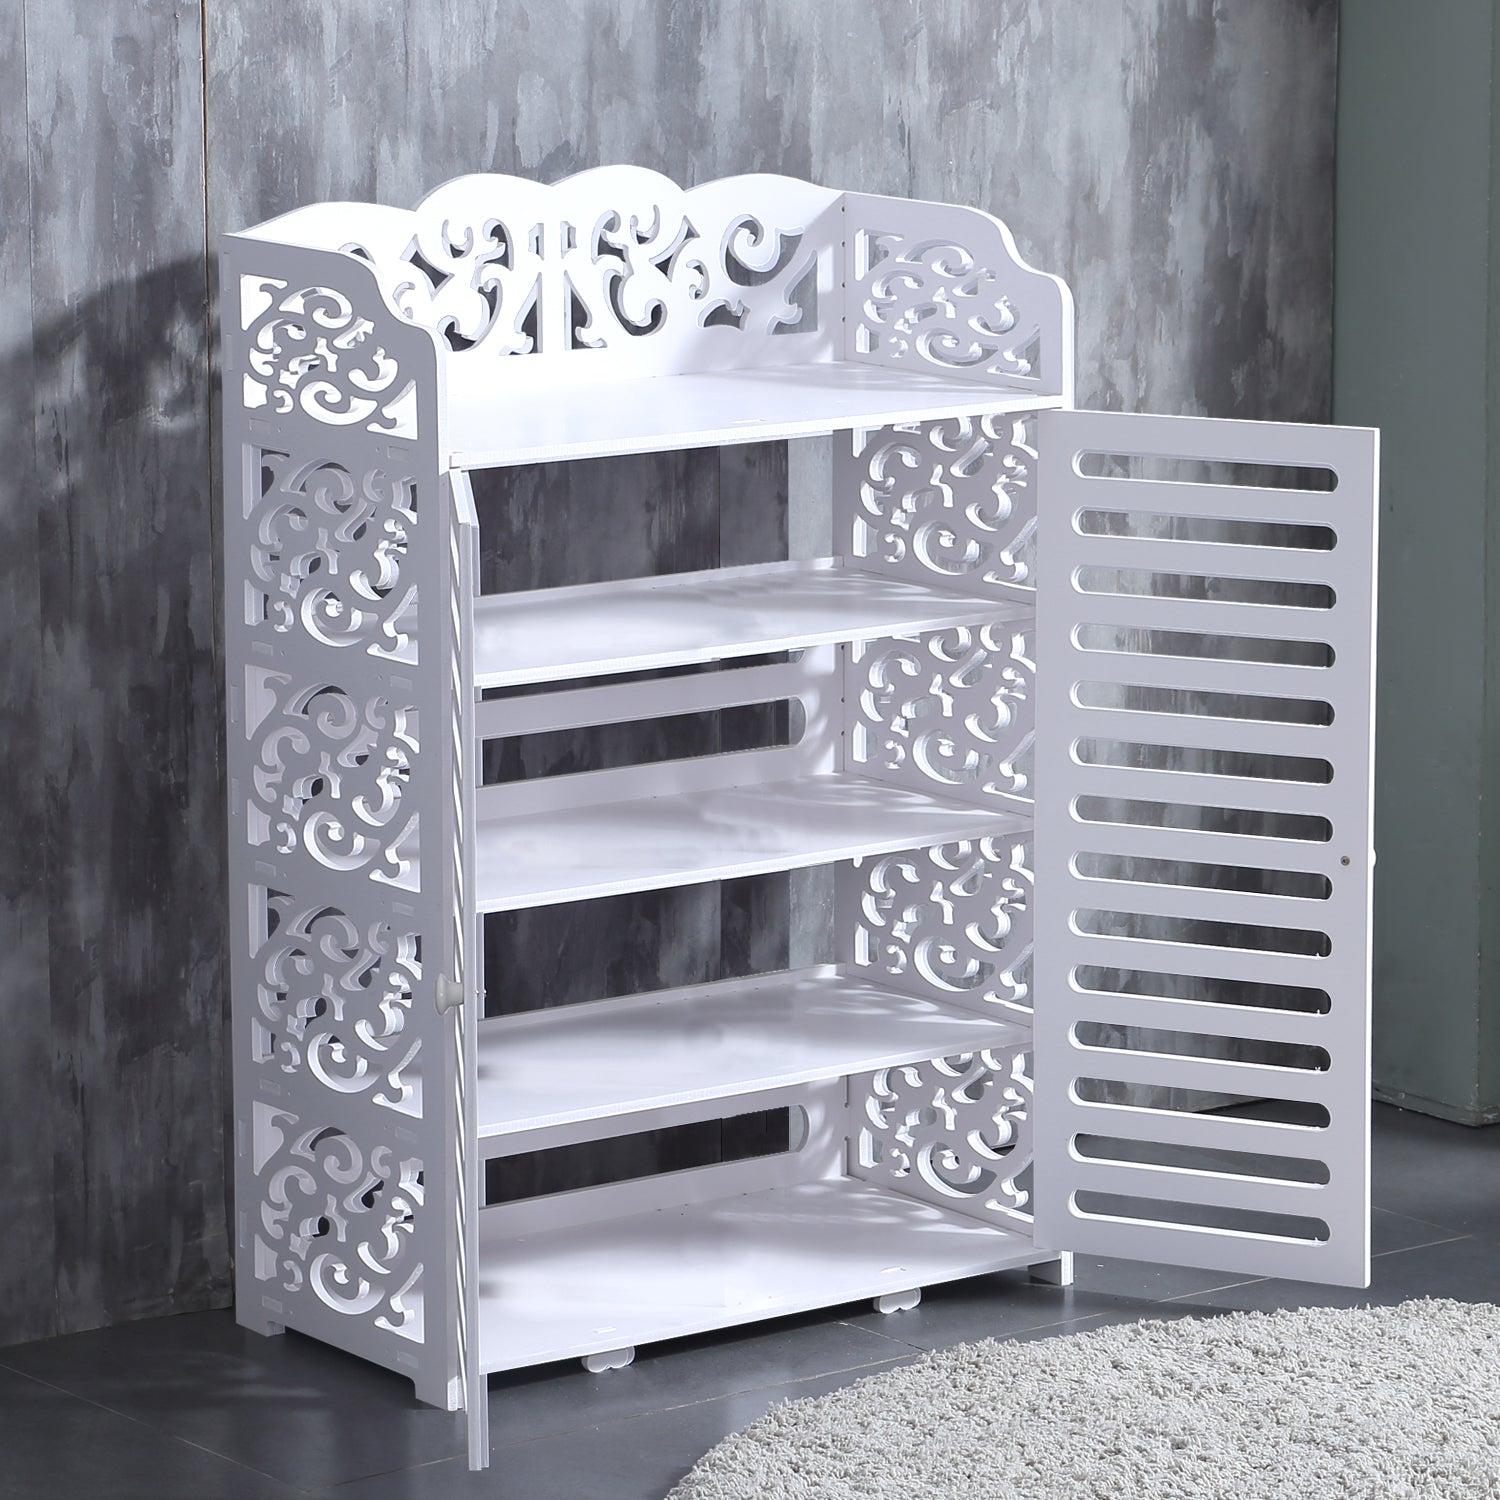 Levede 5 Tier White Chic Hollow Out Shoe Rack Shoes Storage Organizer Shelf